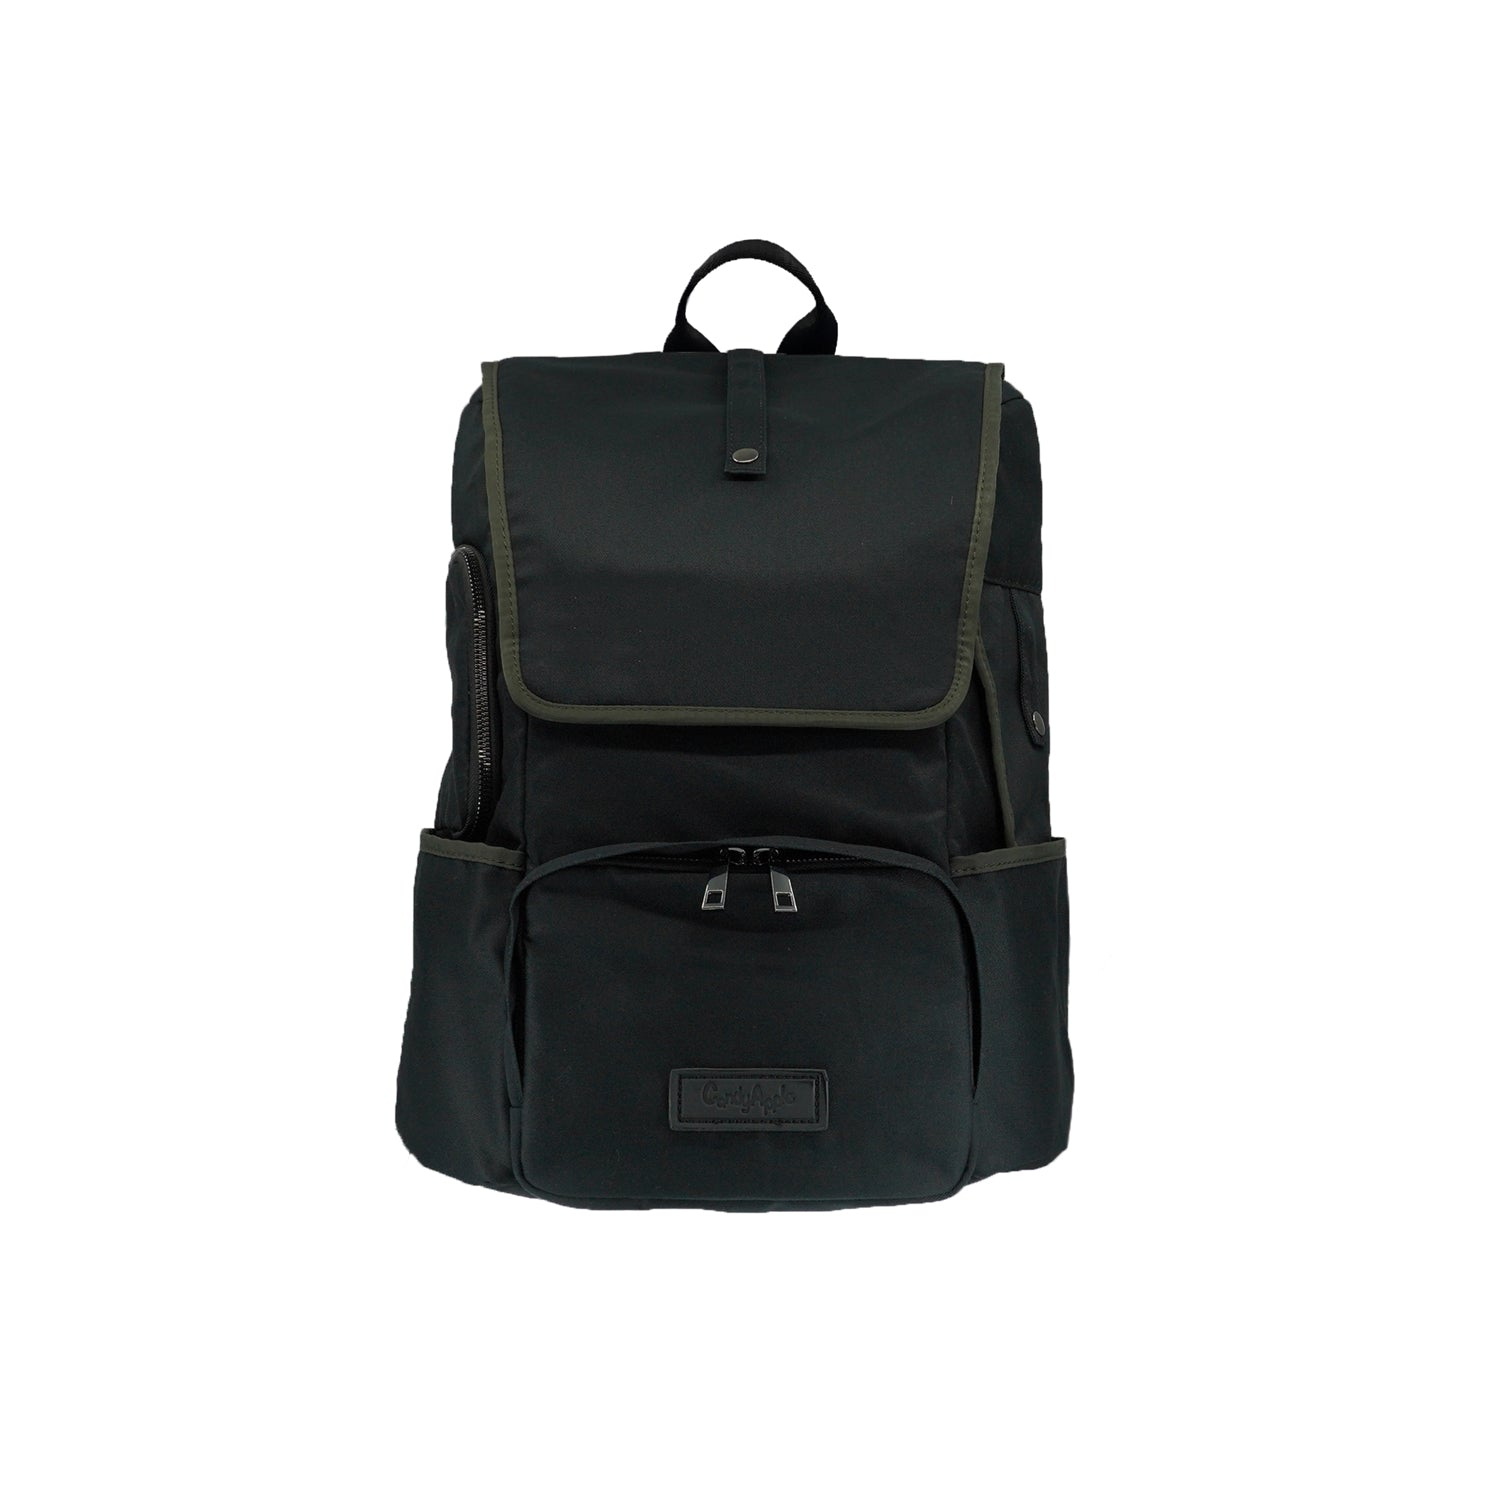 BIEWER BACKPACK CARRIER IN SPADE BLACK - Candy Apple Ltd